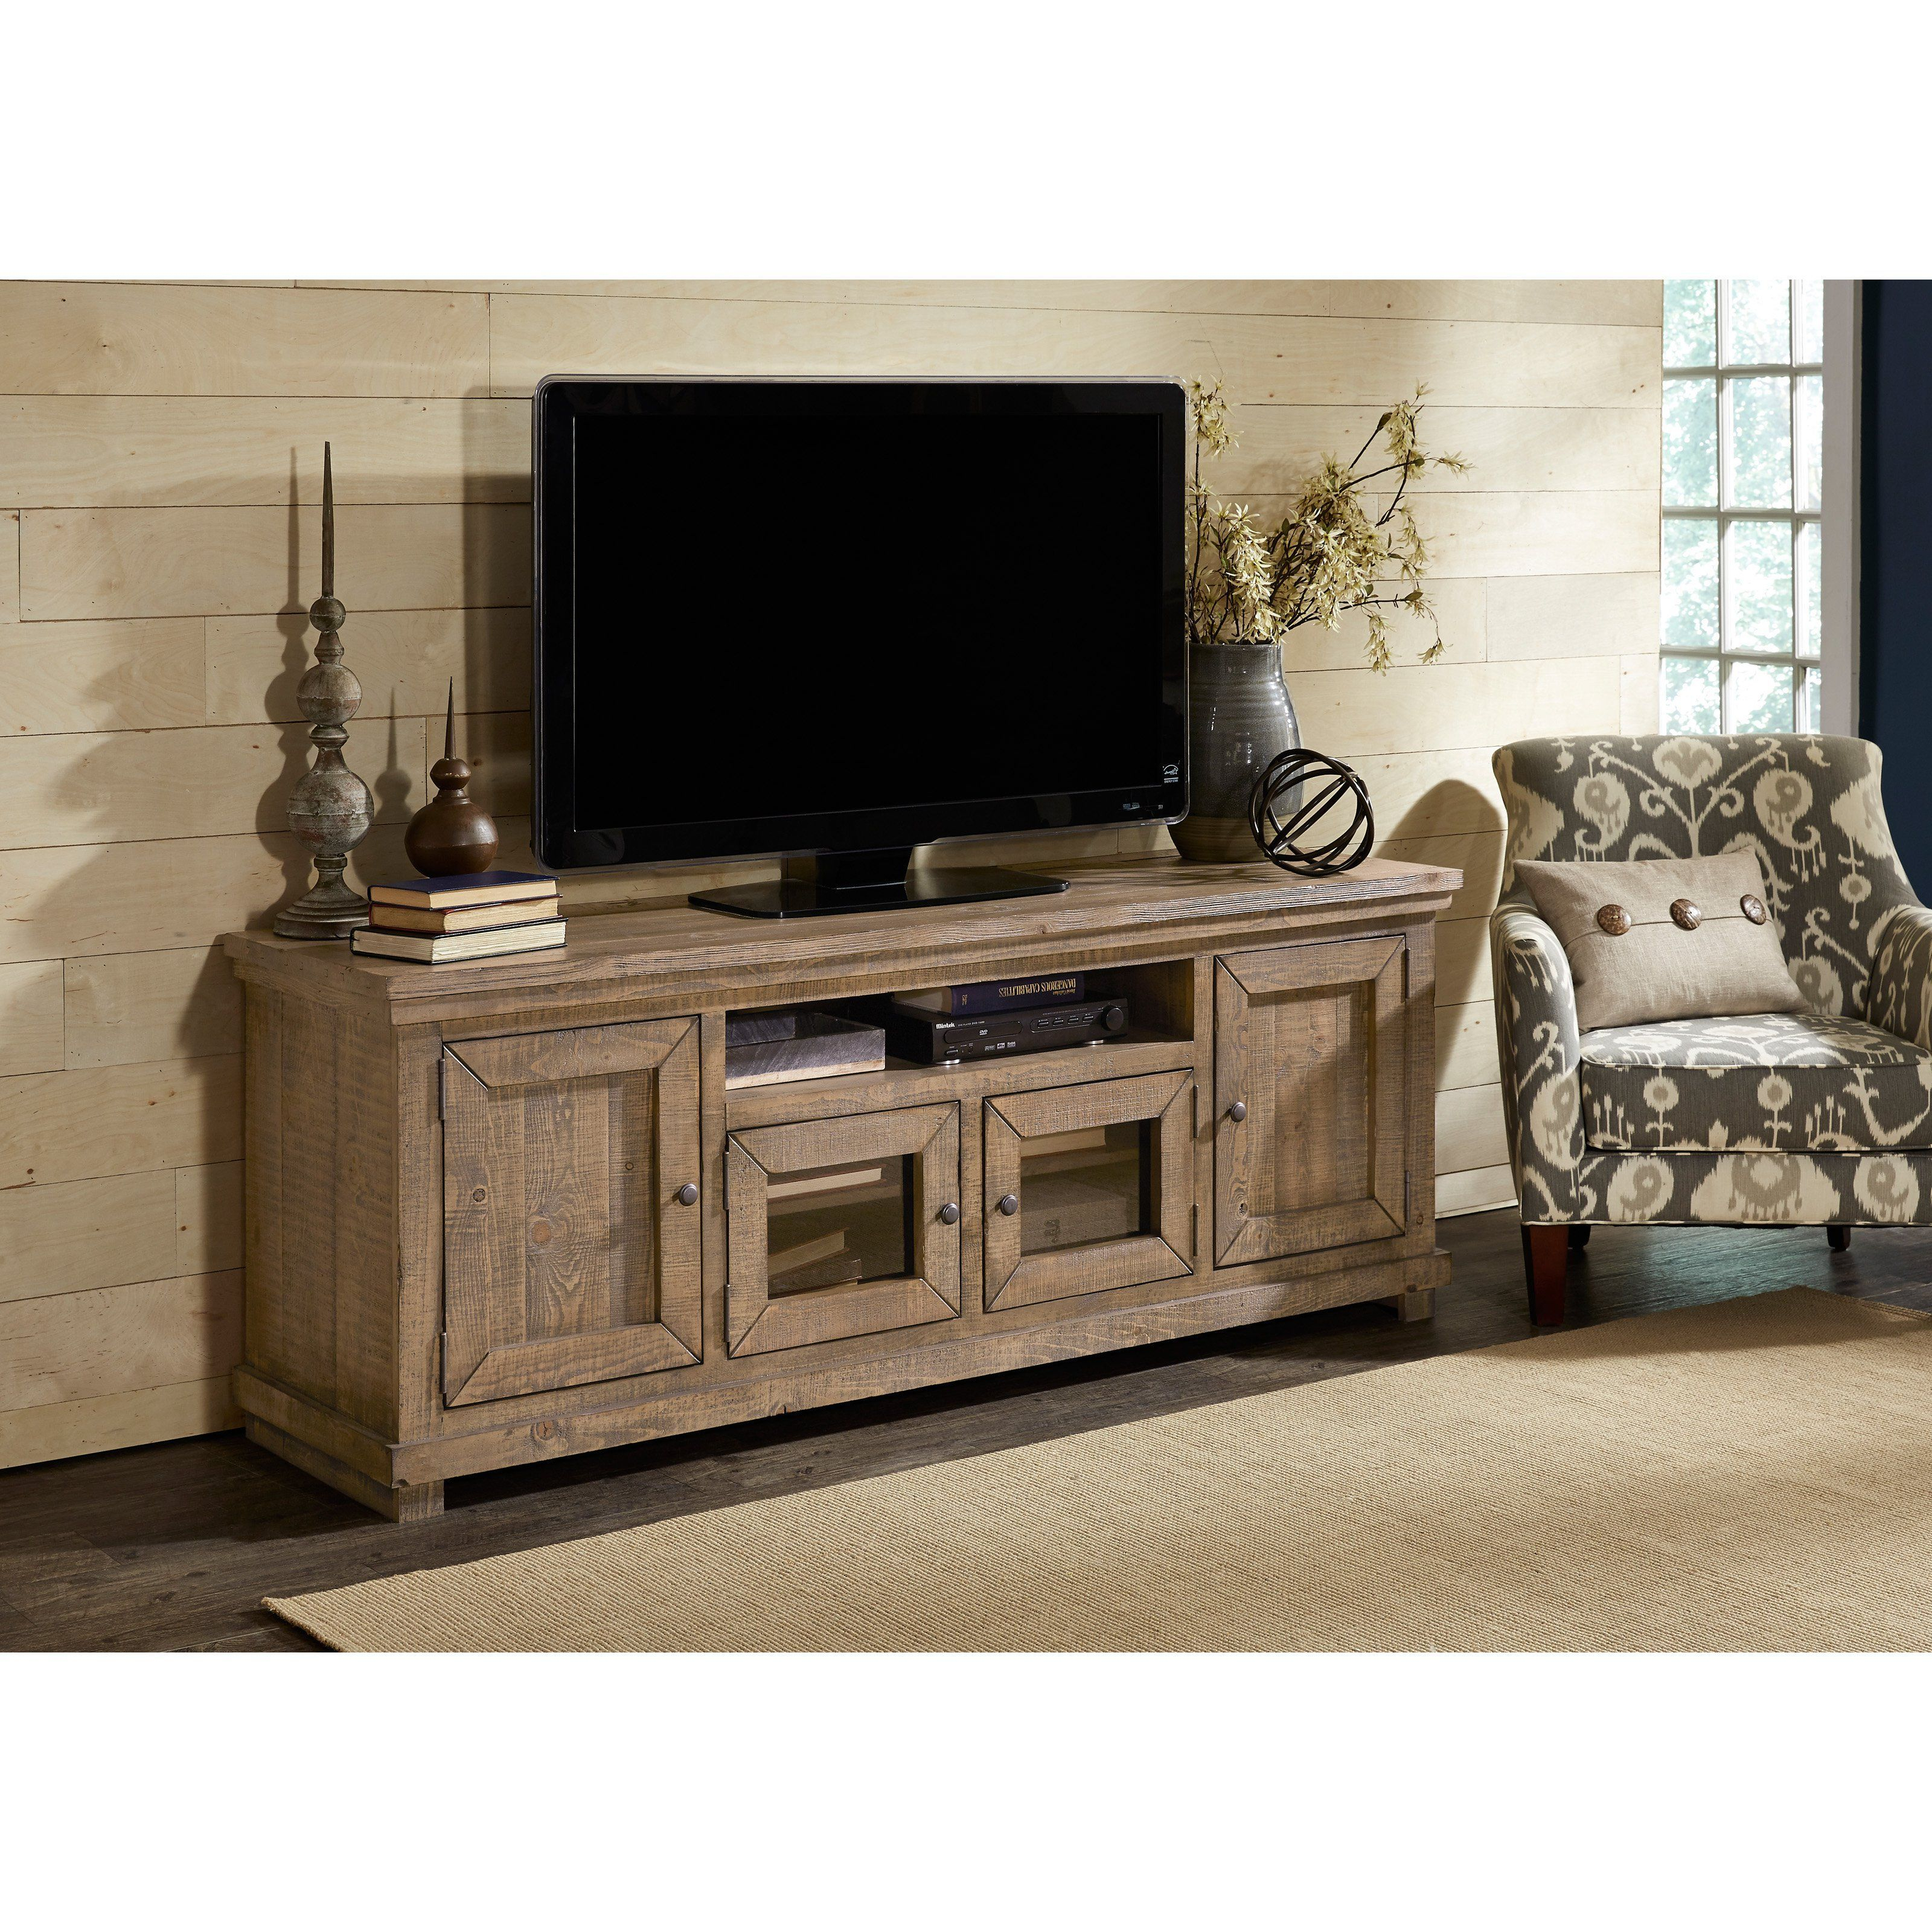 Progressive Furniture Willow 74 In. Tv Console - P635E-74 | Products regarding Sinclair Blue 74 Inch Tv Stands (Image 18 of 30)